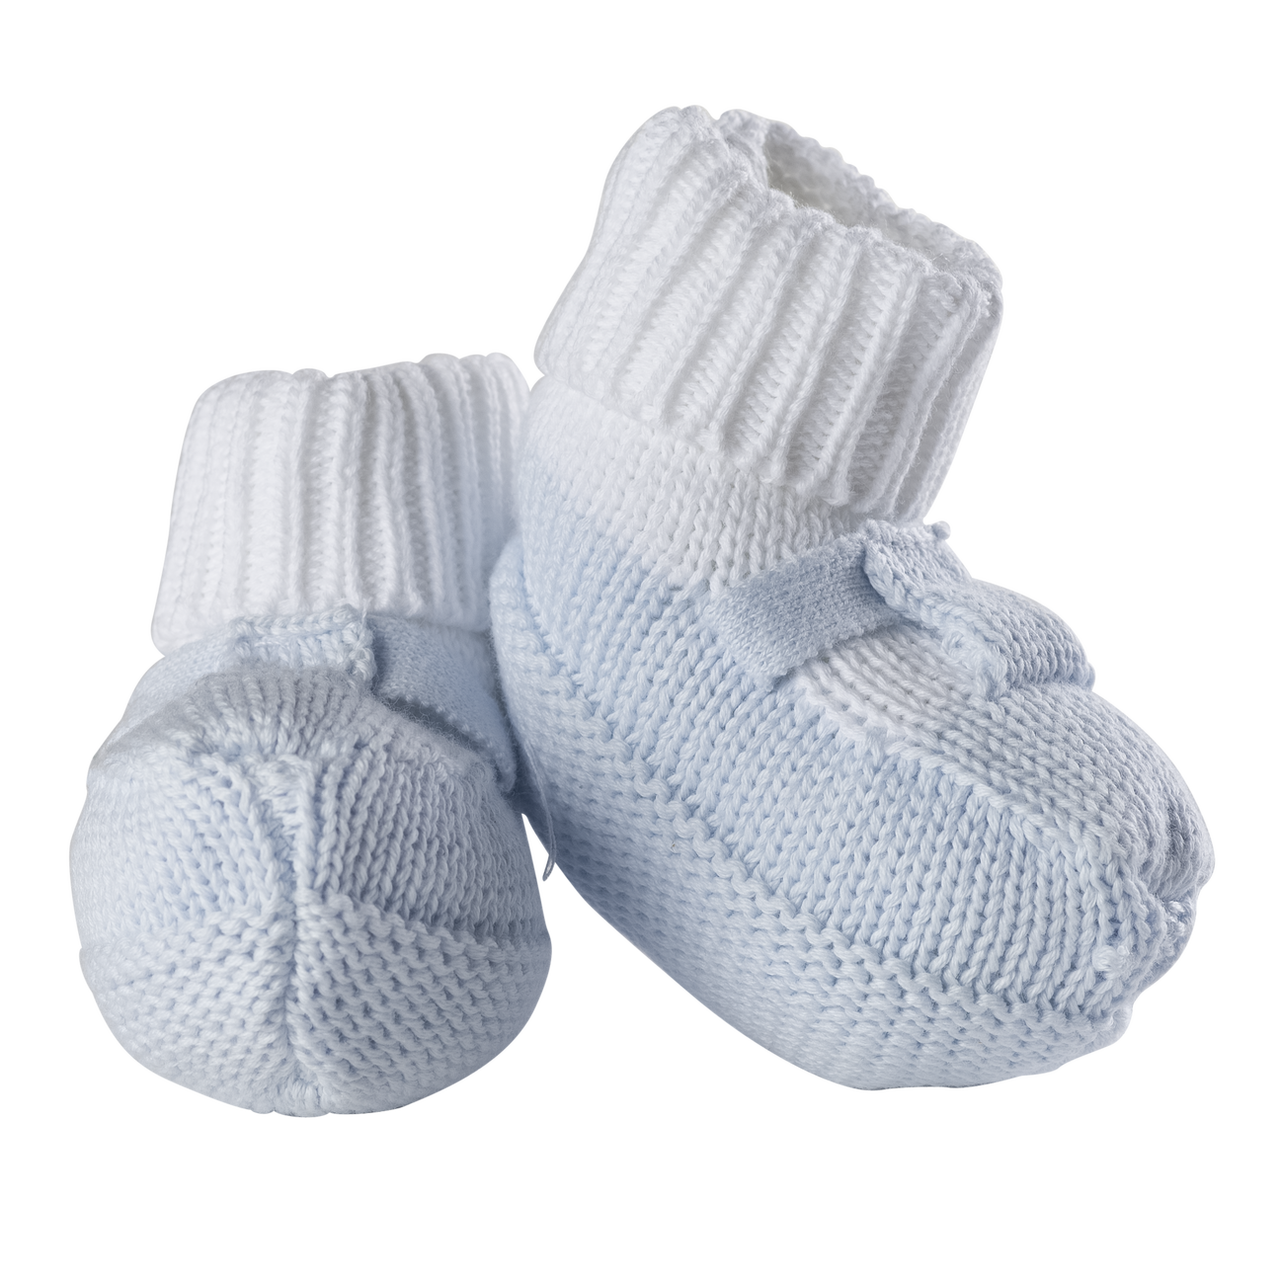 cd65a4a11ed4 Feltman Brothers Boys Blue Knit Mocked Booties - Adi Treasures